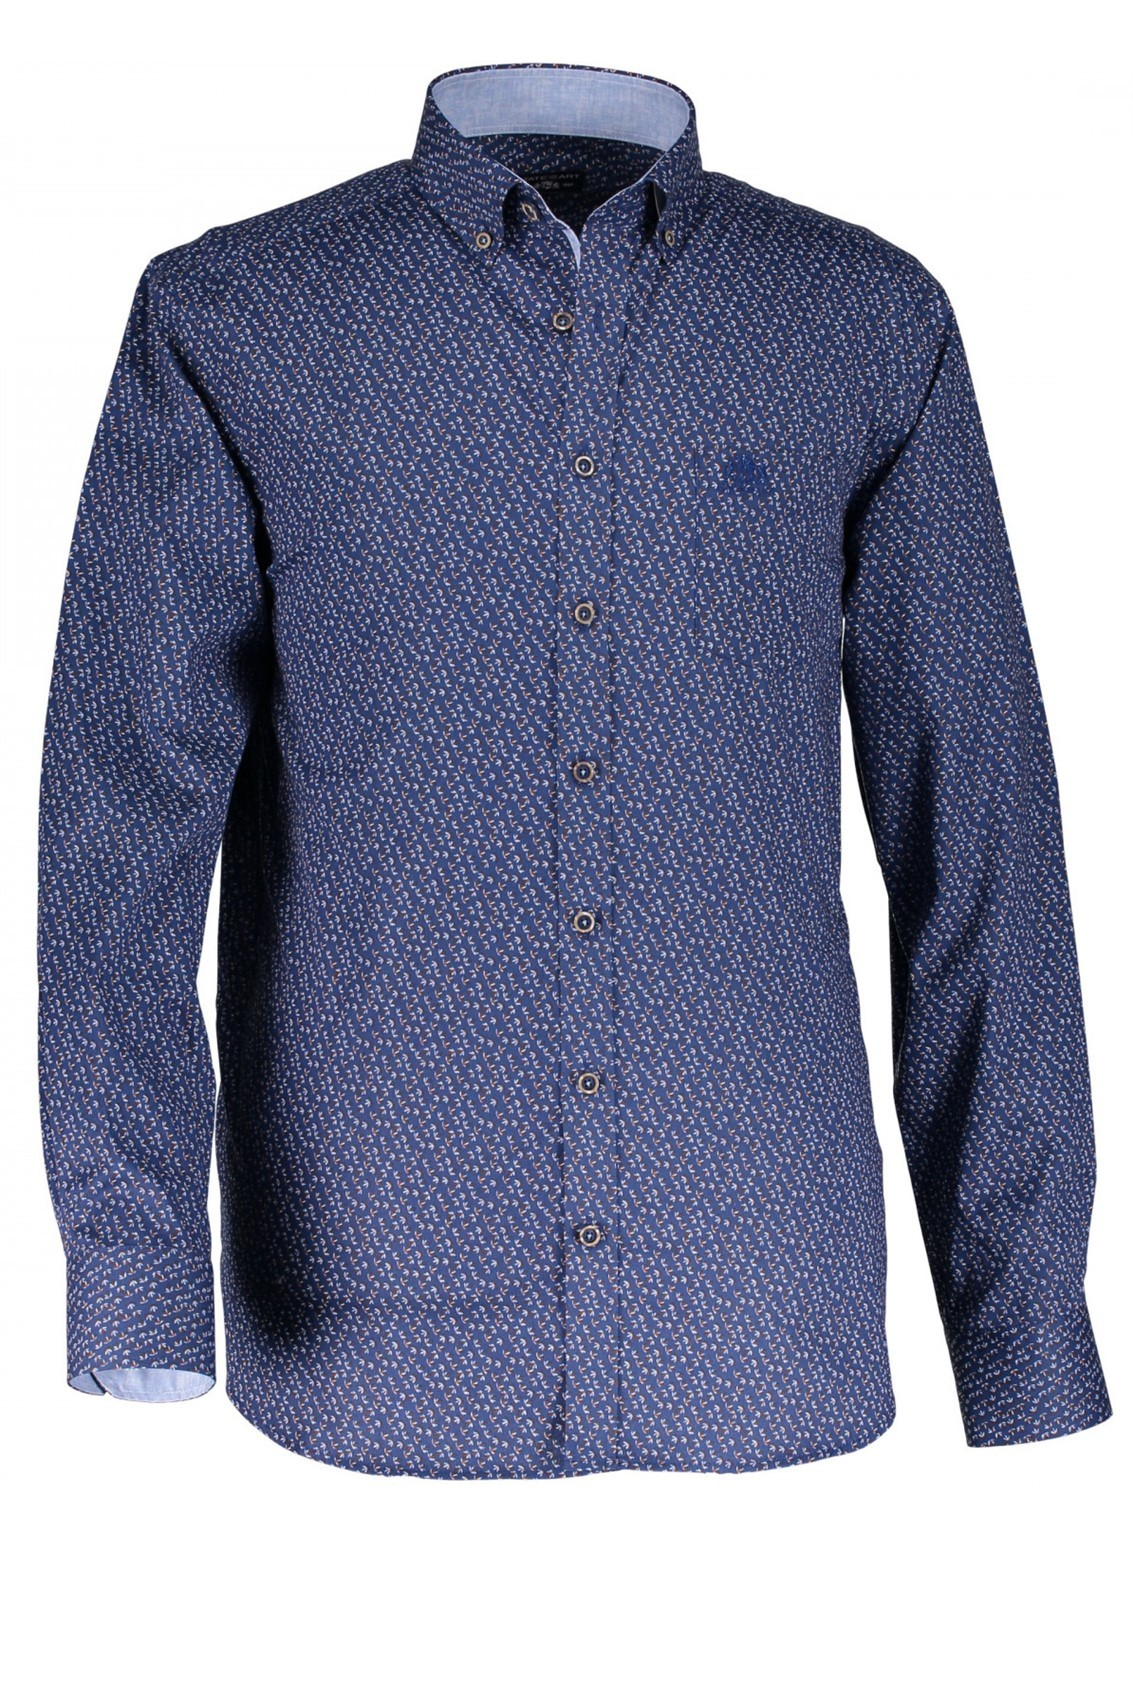 Casual Overhemd.State Of Art Casual Overhemd Print Cobalt